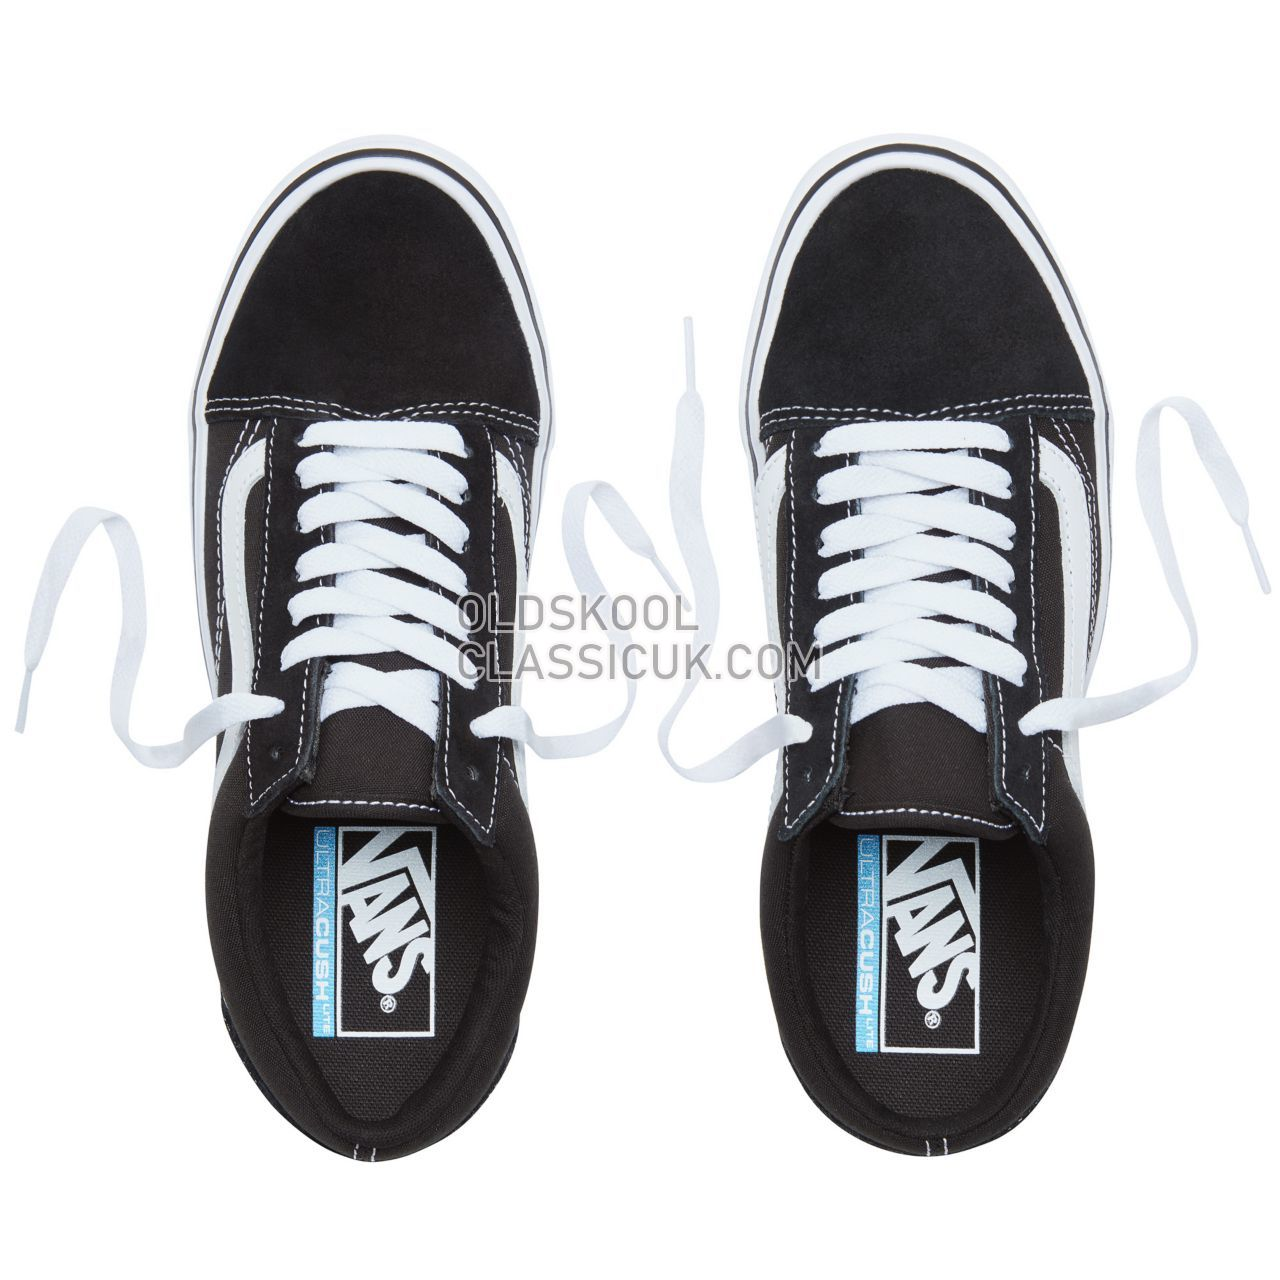 Vans Suede Old Skool Lite Sneakers Mens Womens Unisex Black/White VA2Z5WIJU Shoes